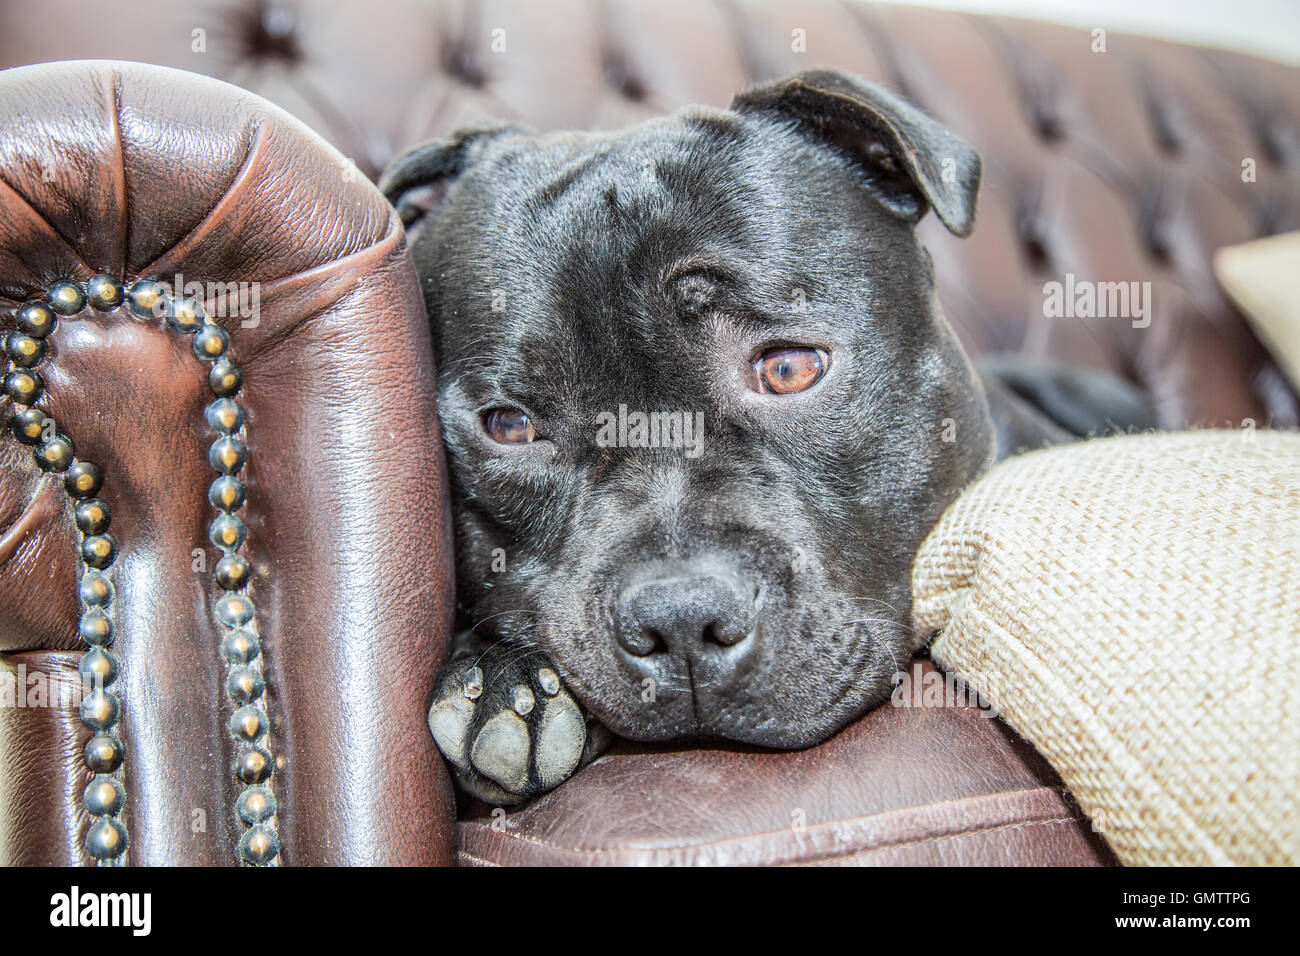 A staffordshire bull terrier dog portrait, he has just woken up and is looking off the end of a sofa with a cute - Stock Image